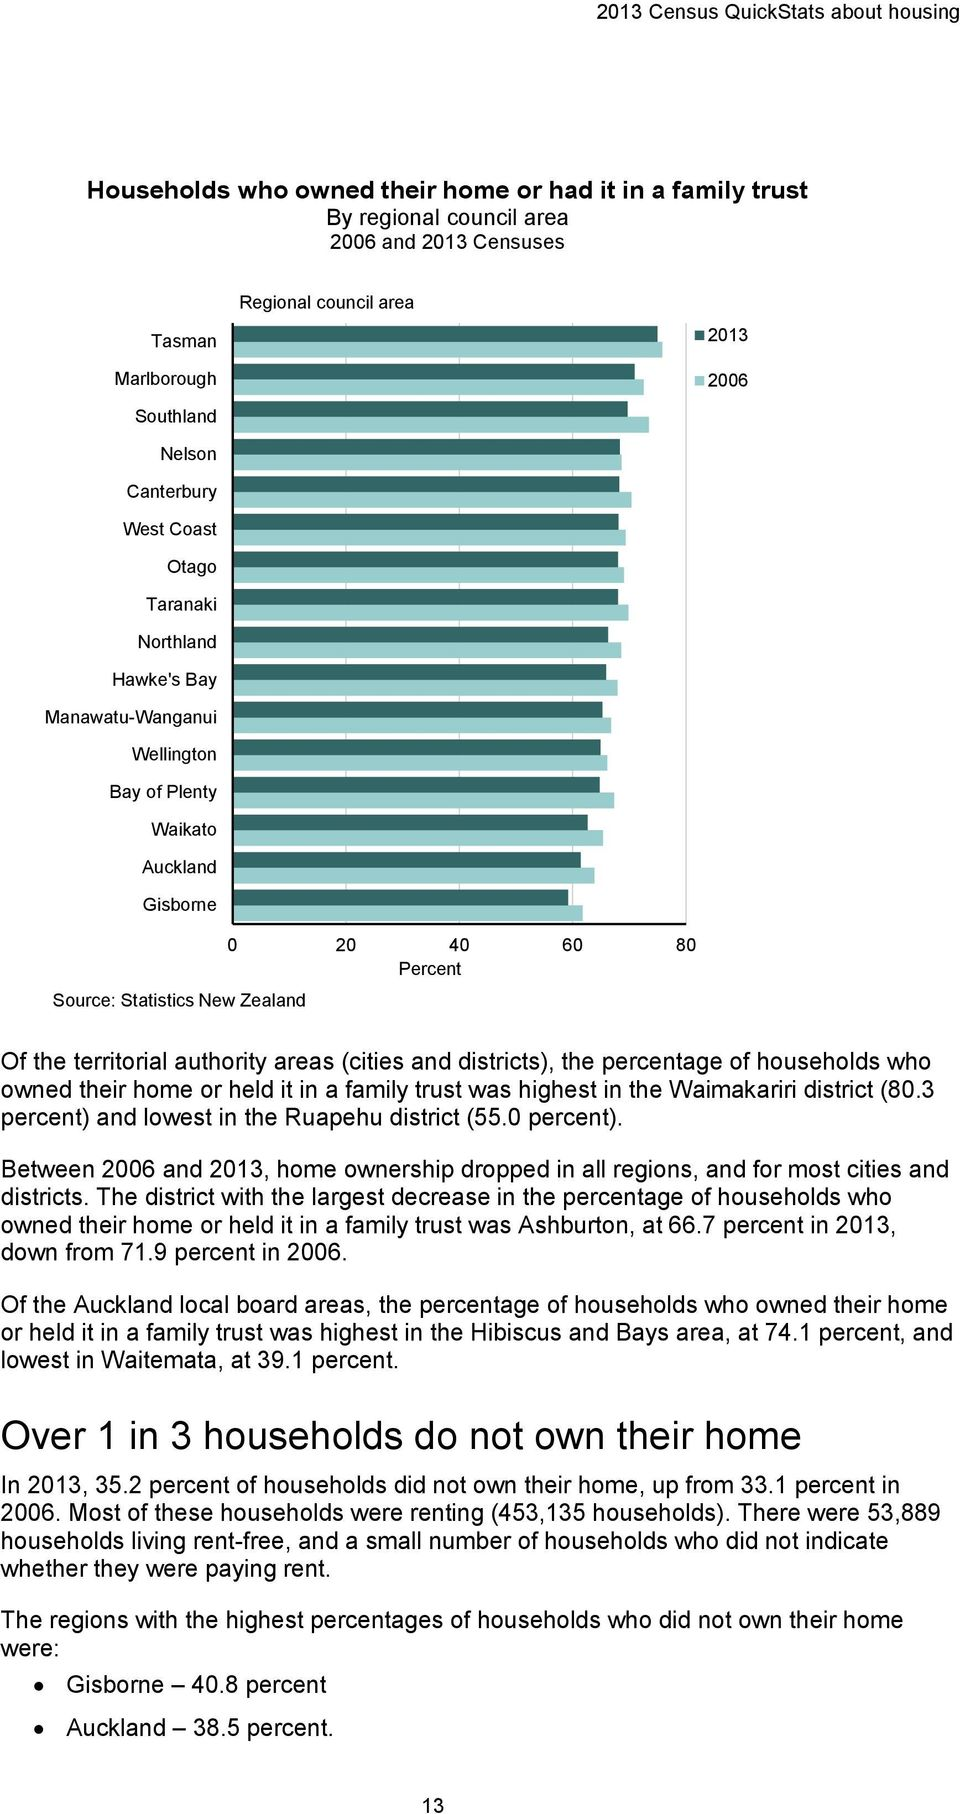 the territorial authority areas (cities and districts), the percentage of households who owned their home or held it in a family trust was highest in the Waimakariri district (80.